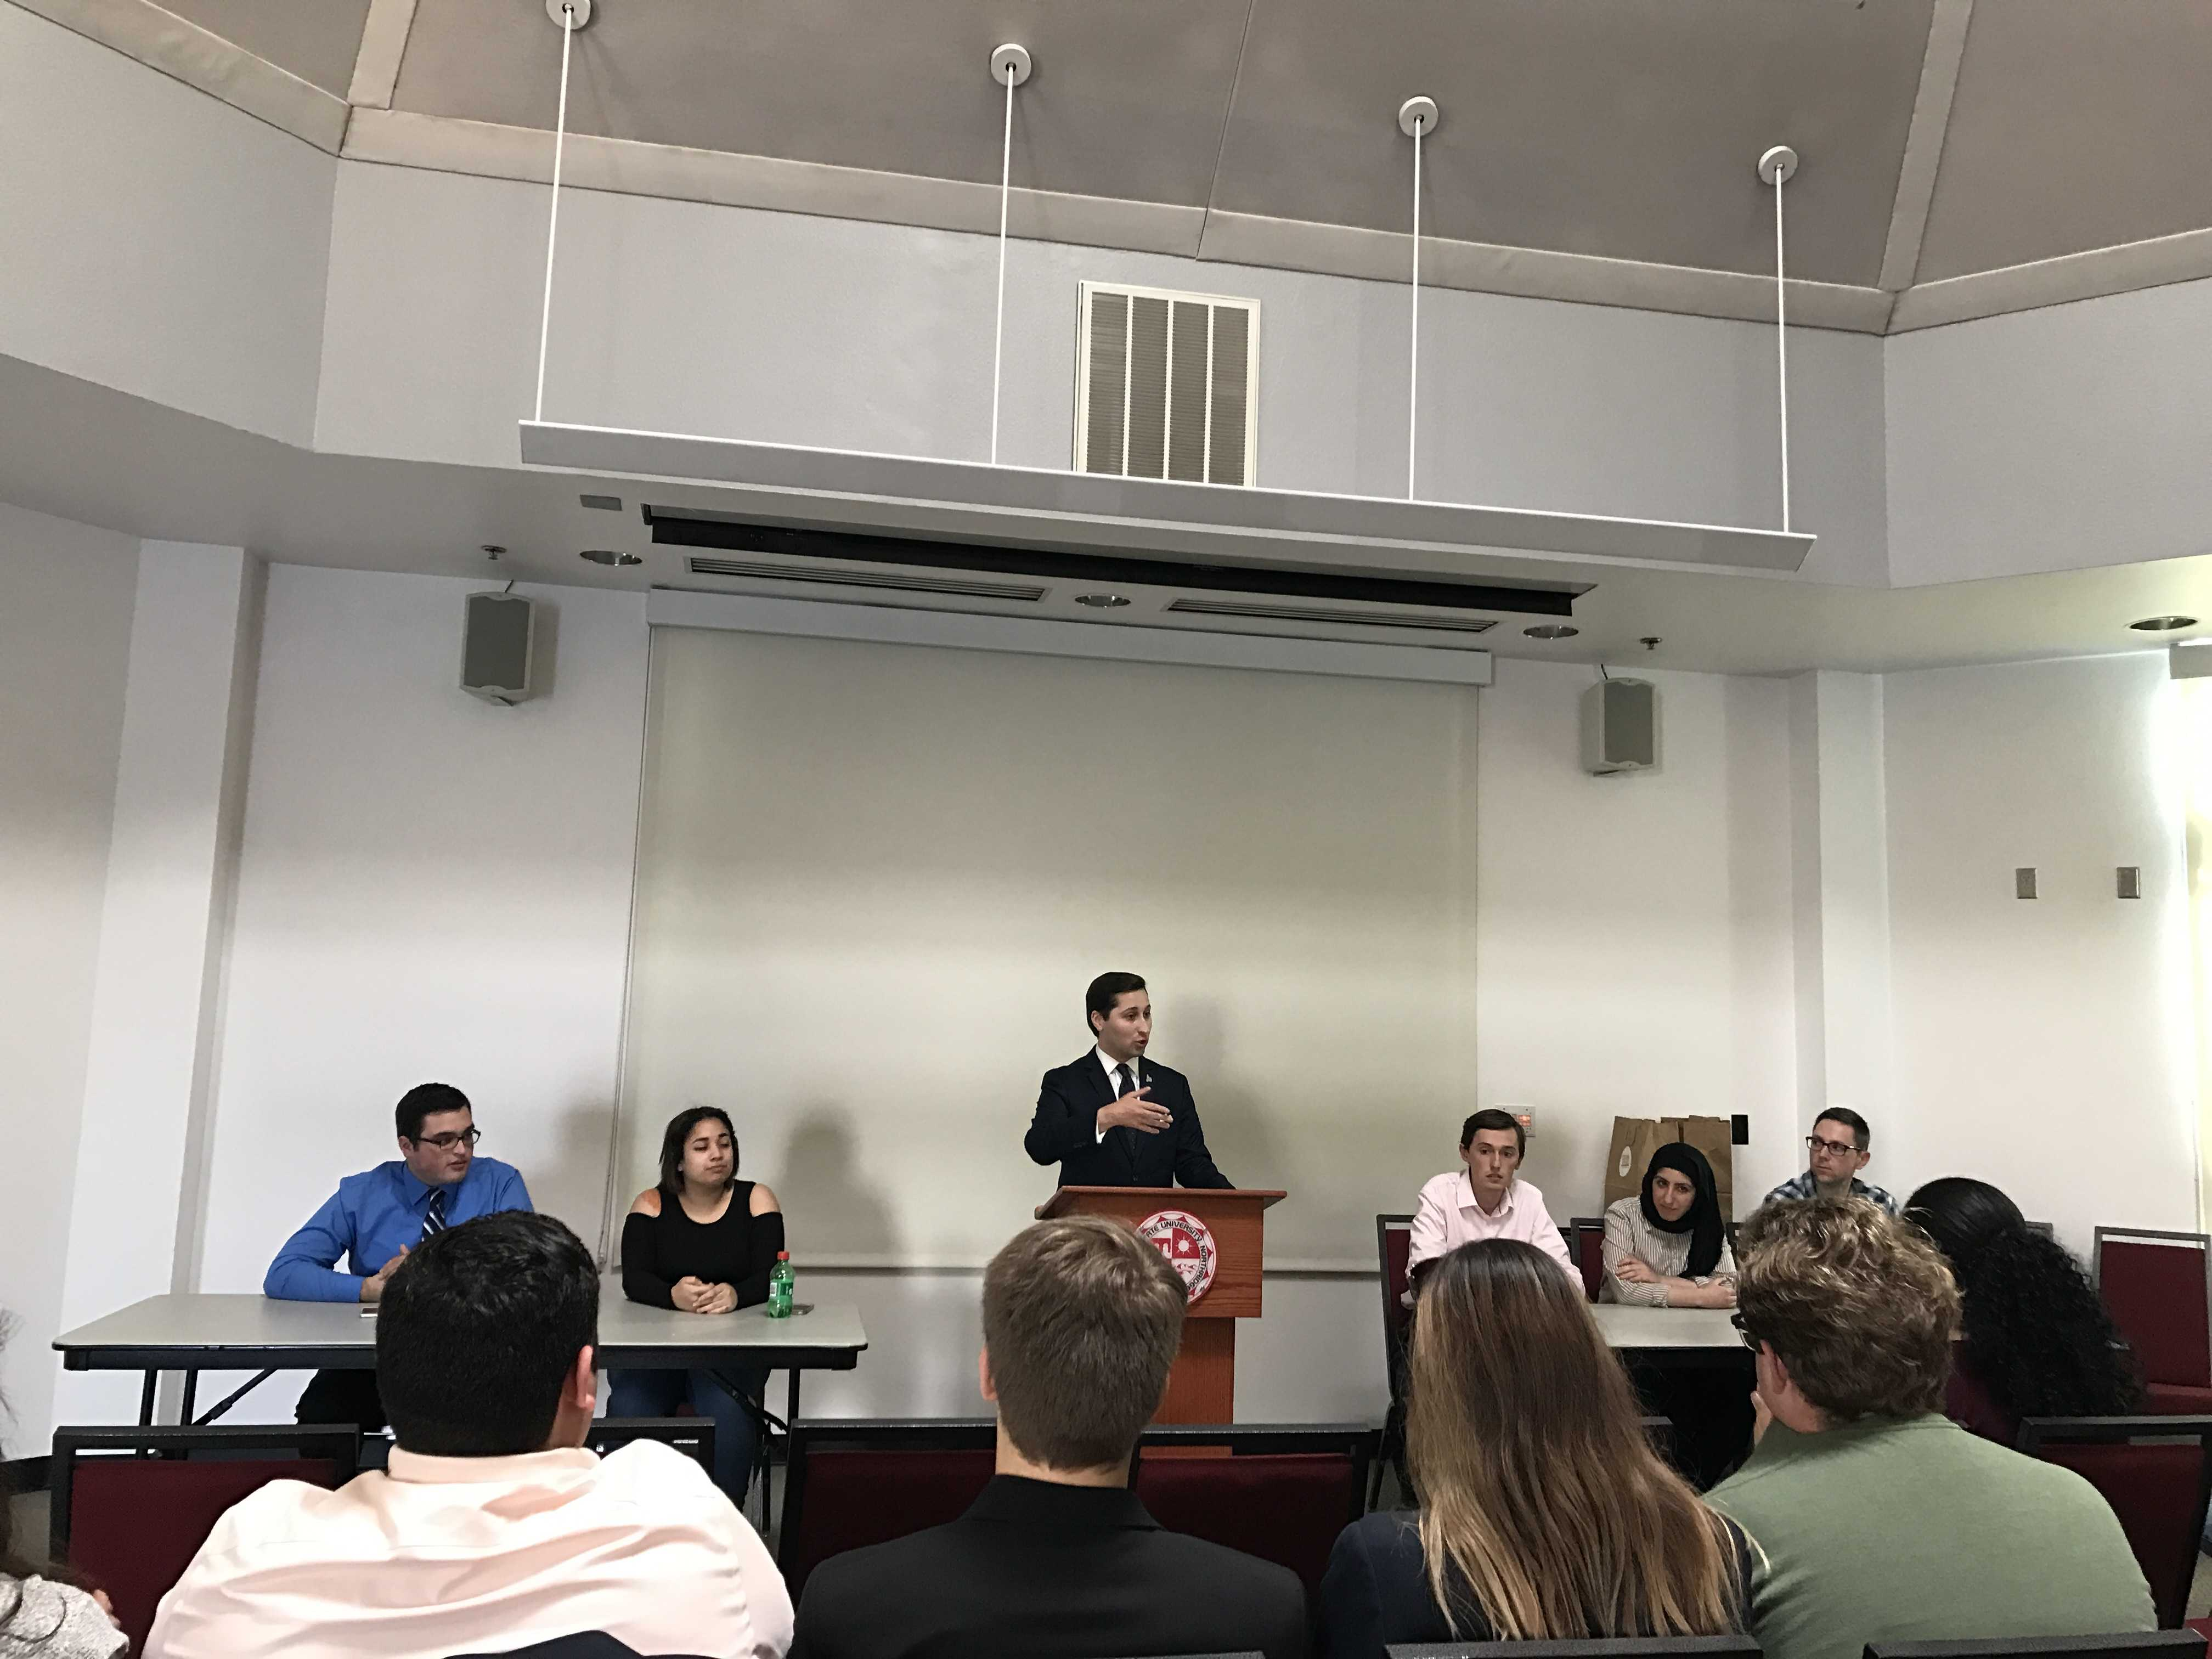 Sean Regan pictured presenting for a small crowd with a panel